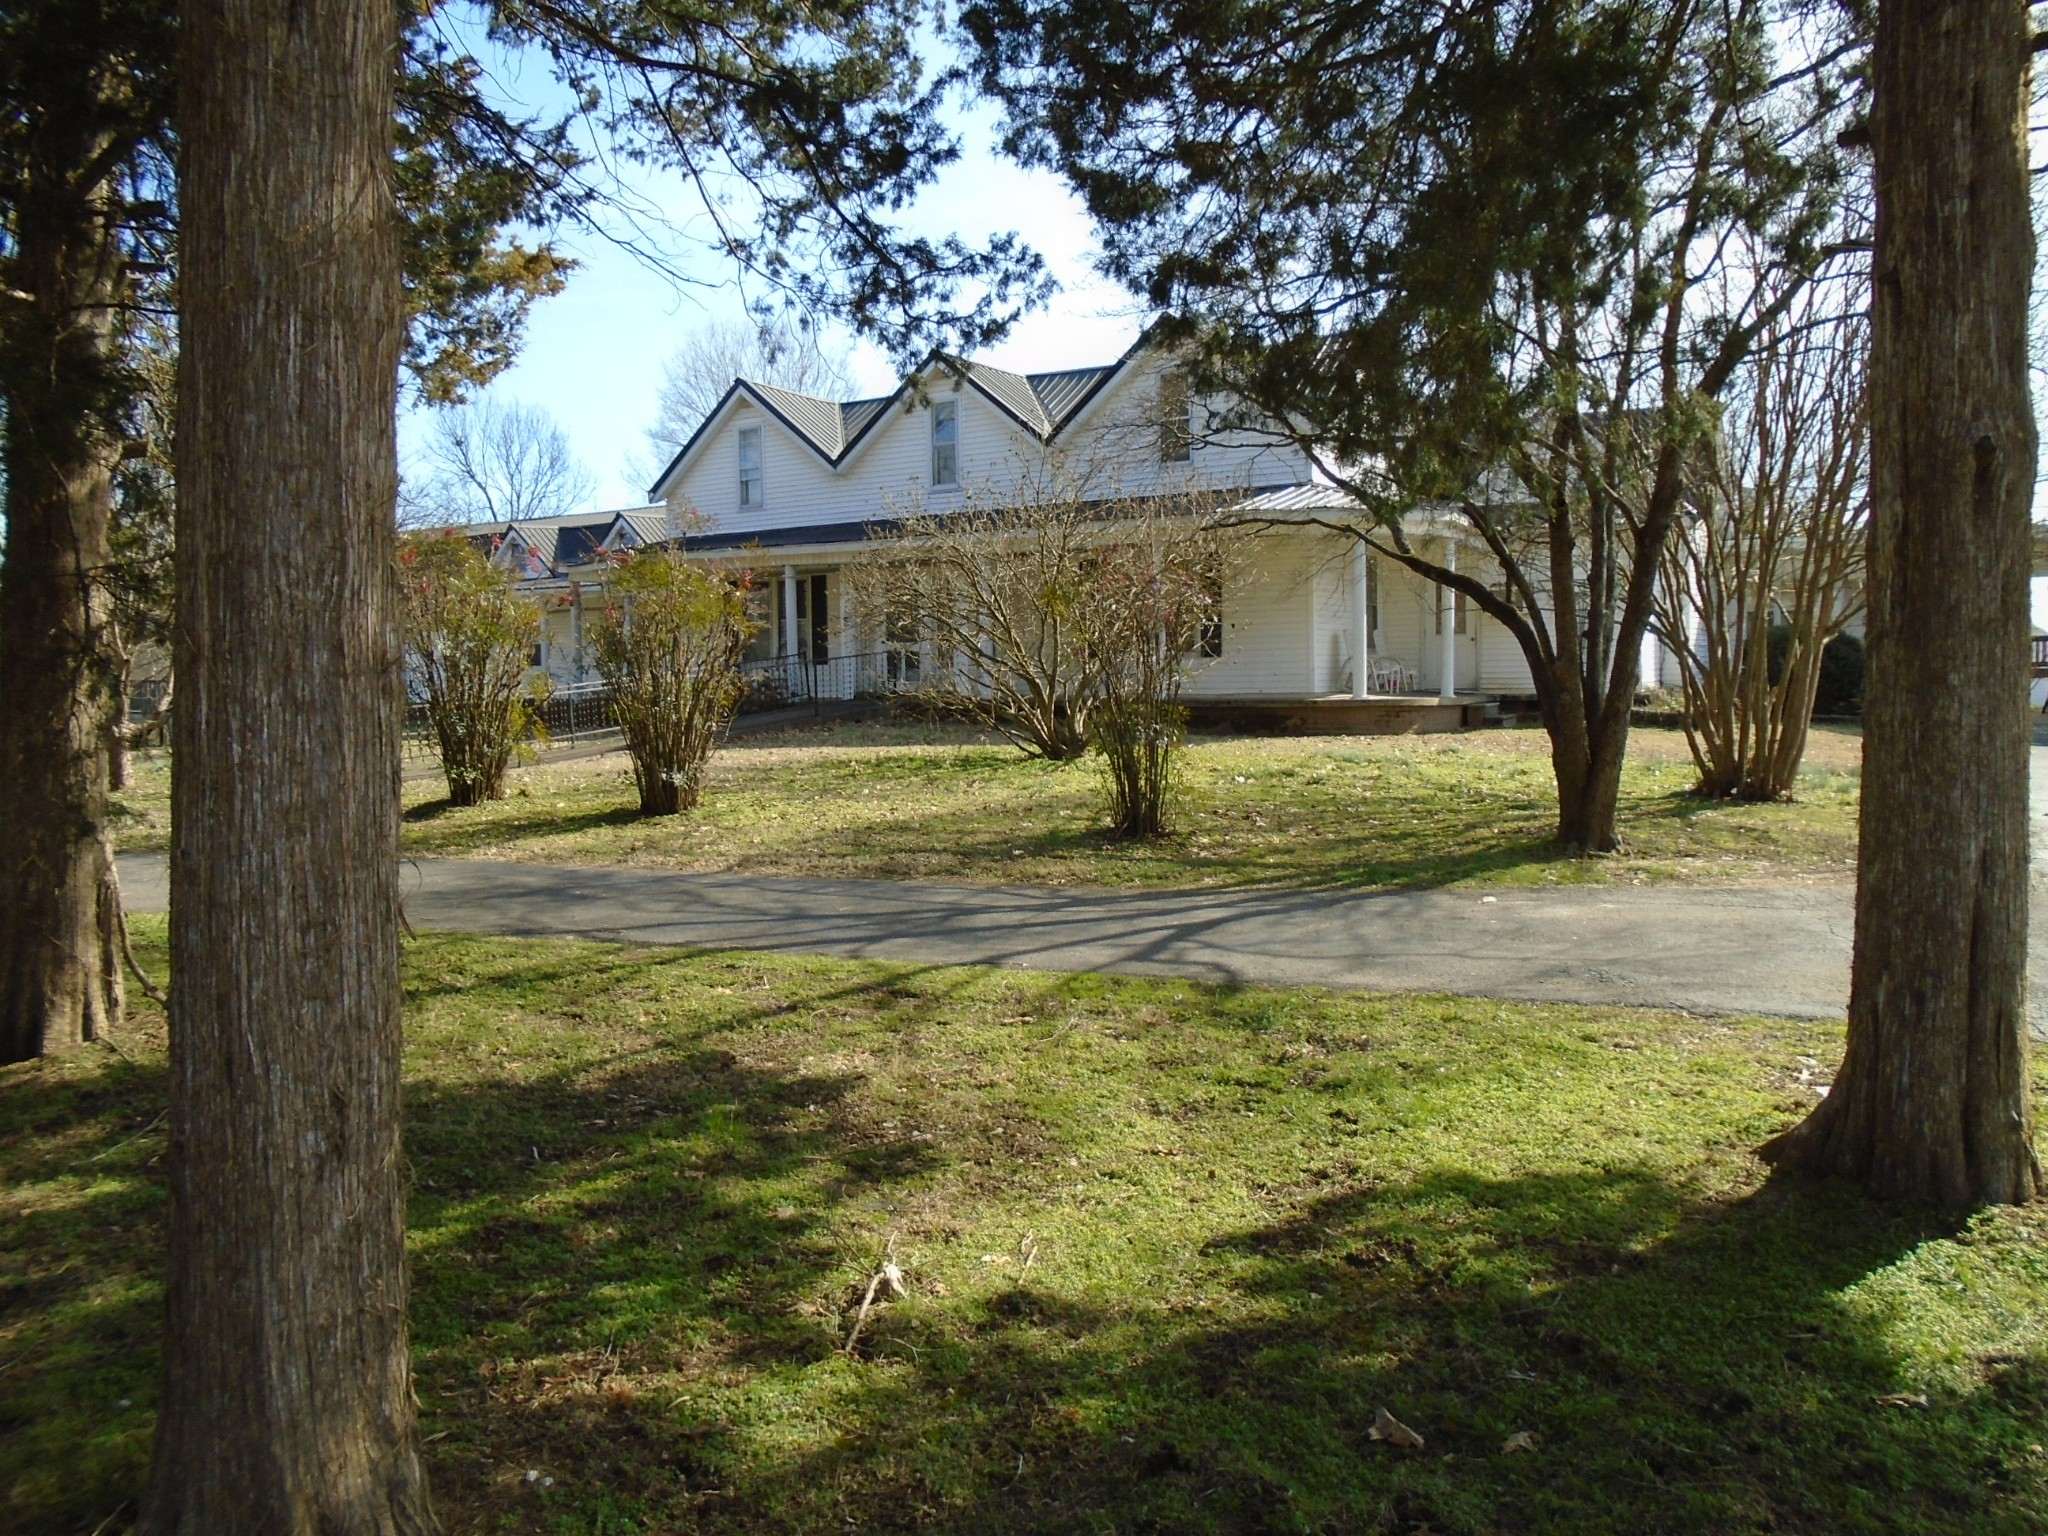 403 S Church St Property Photo - Adams, TN real estate listing